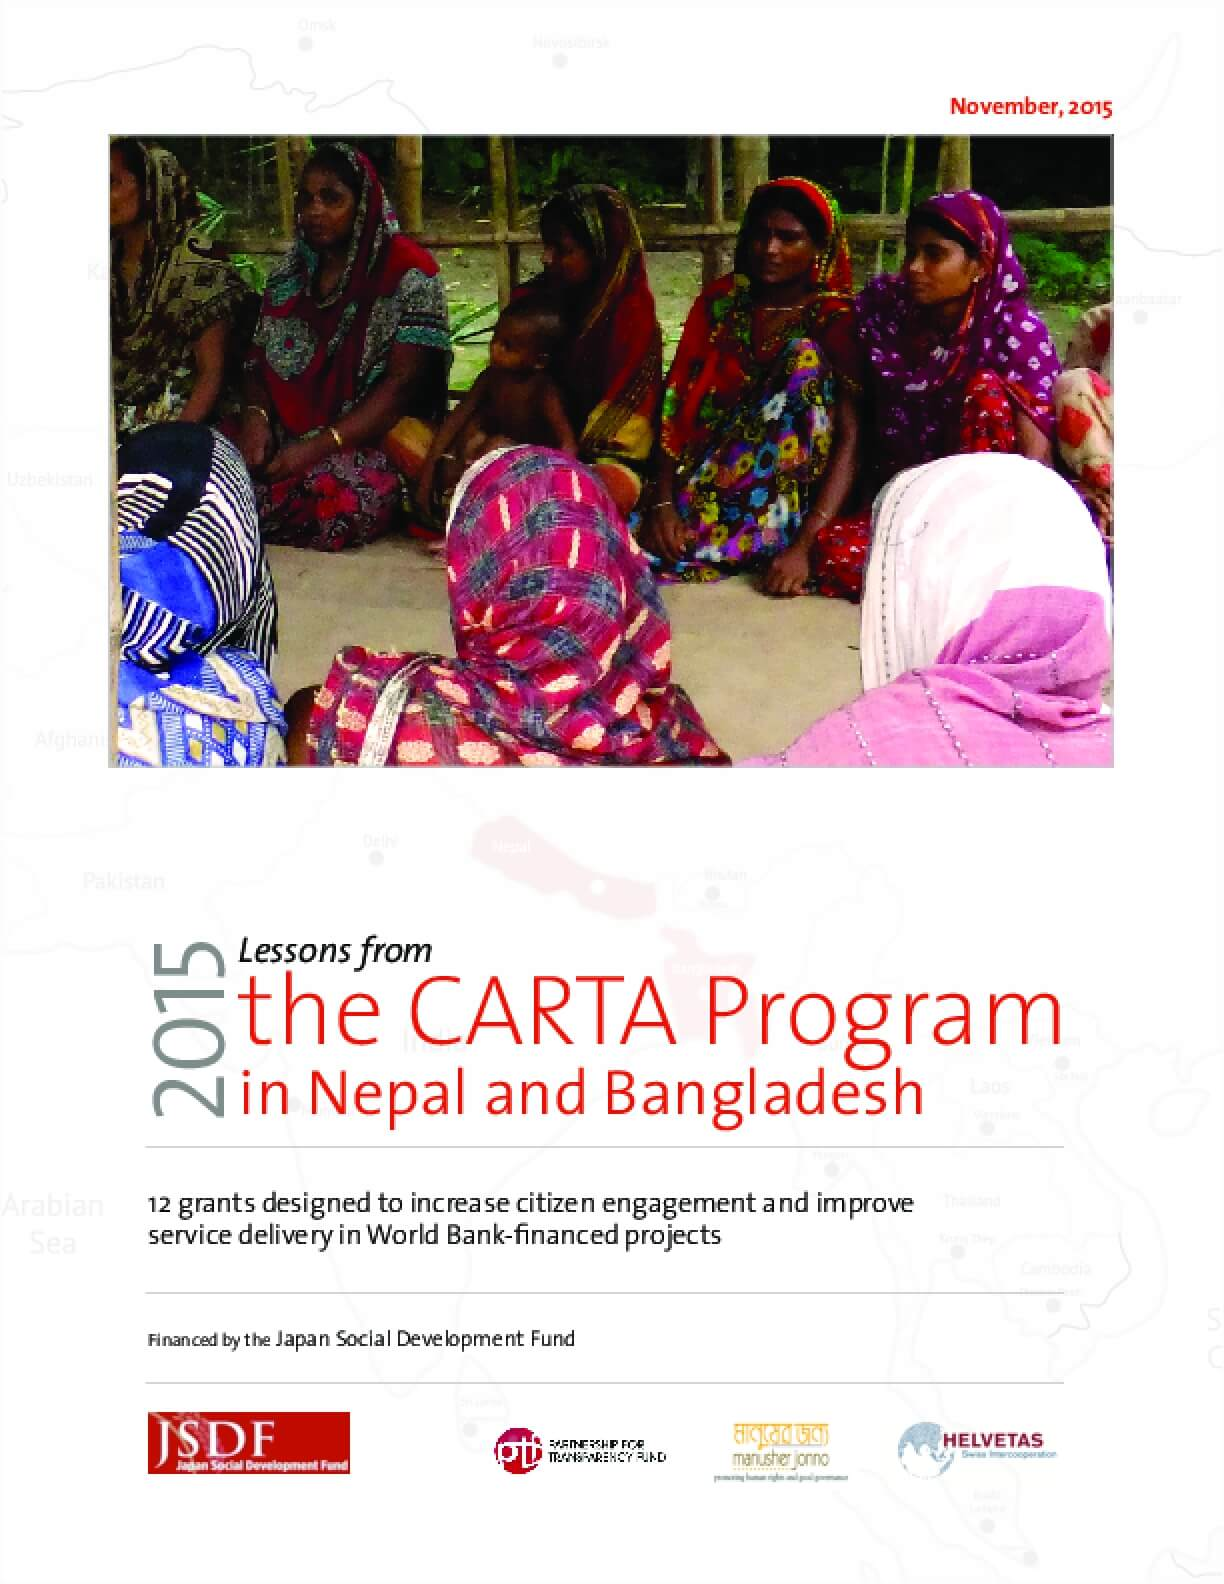 Lessons from the CARTA Program in Nepal and Bangladesh